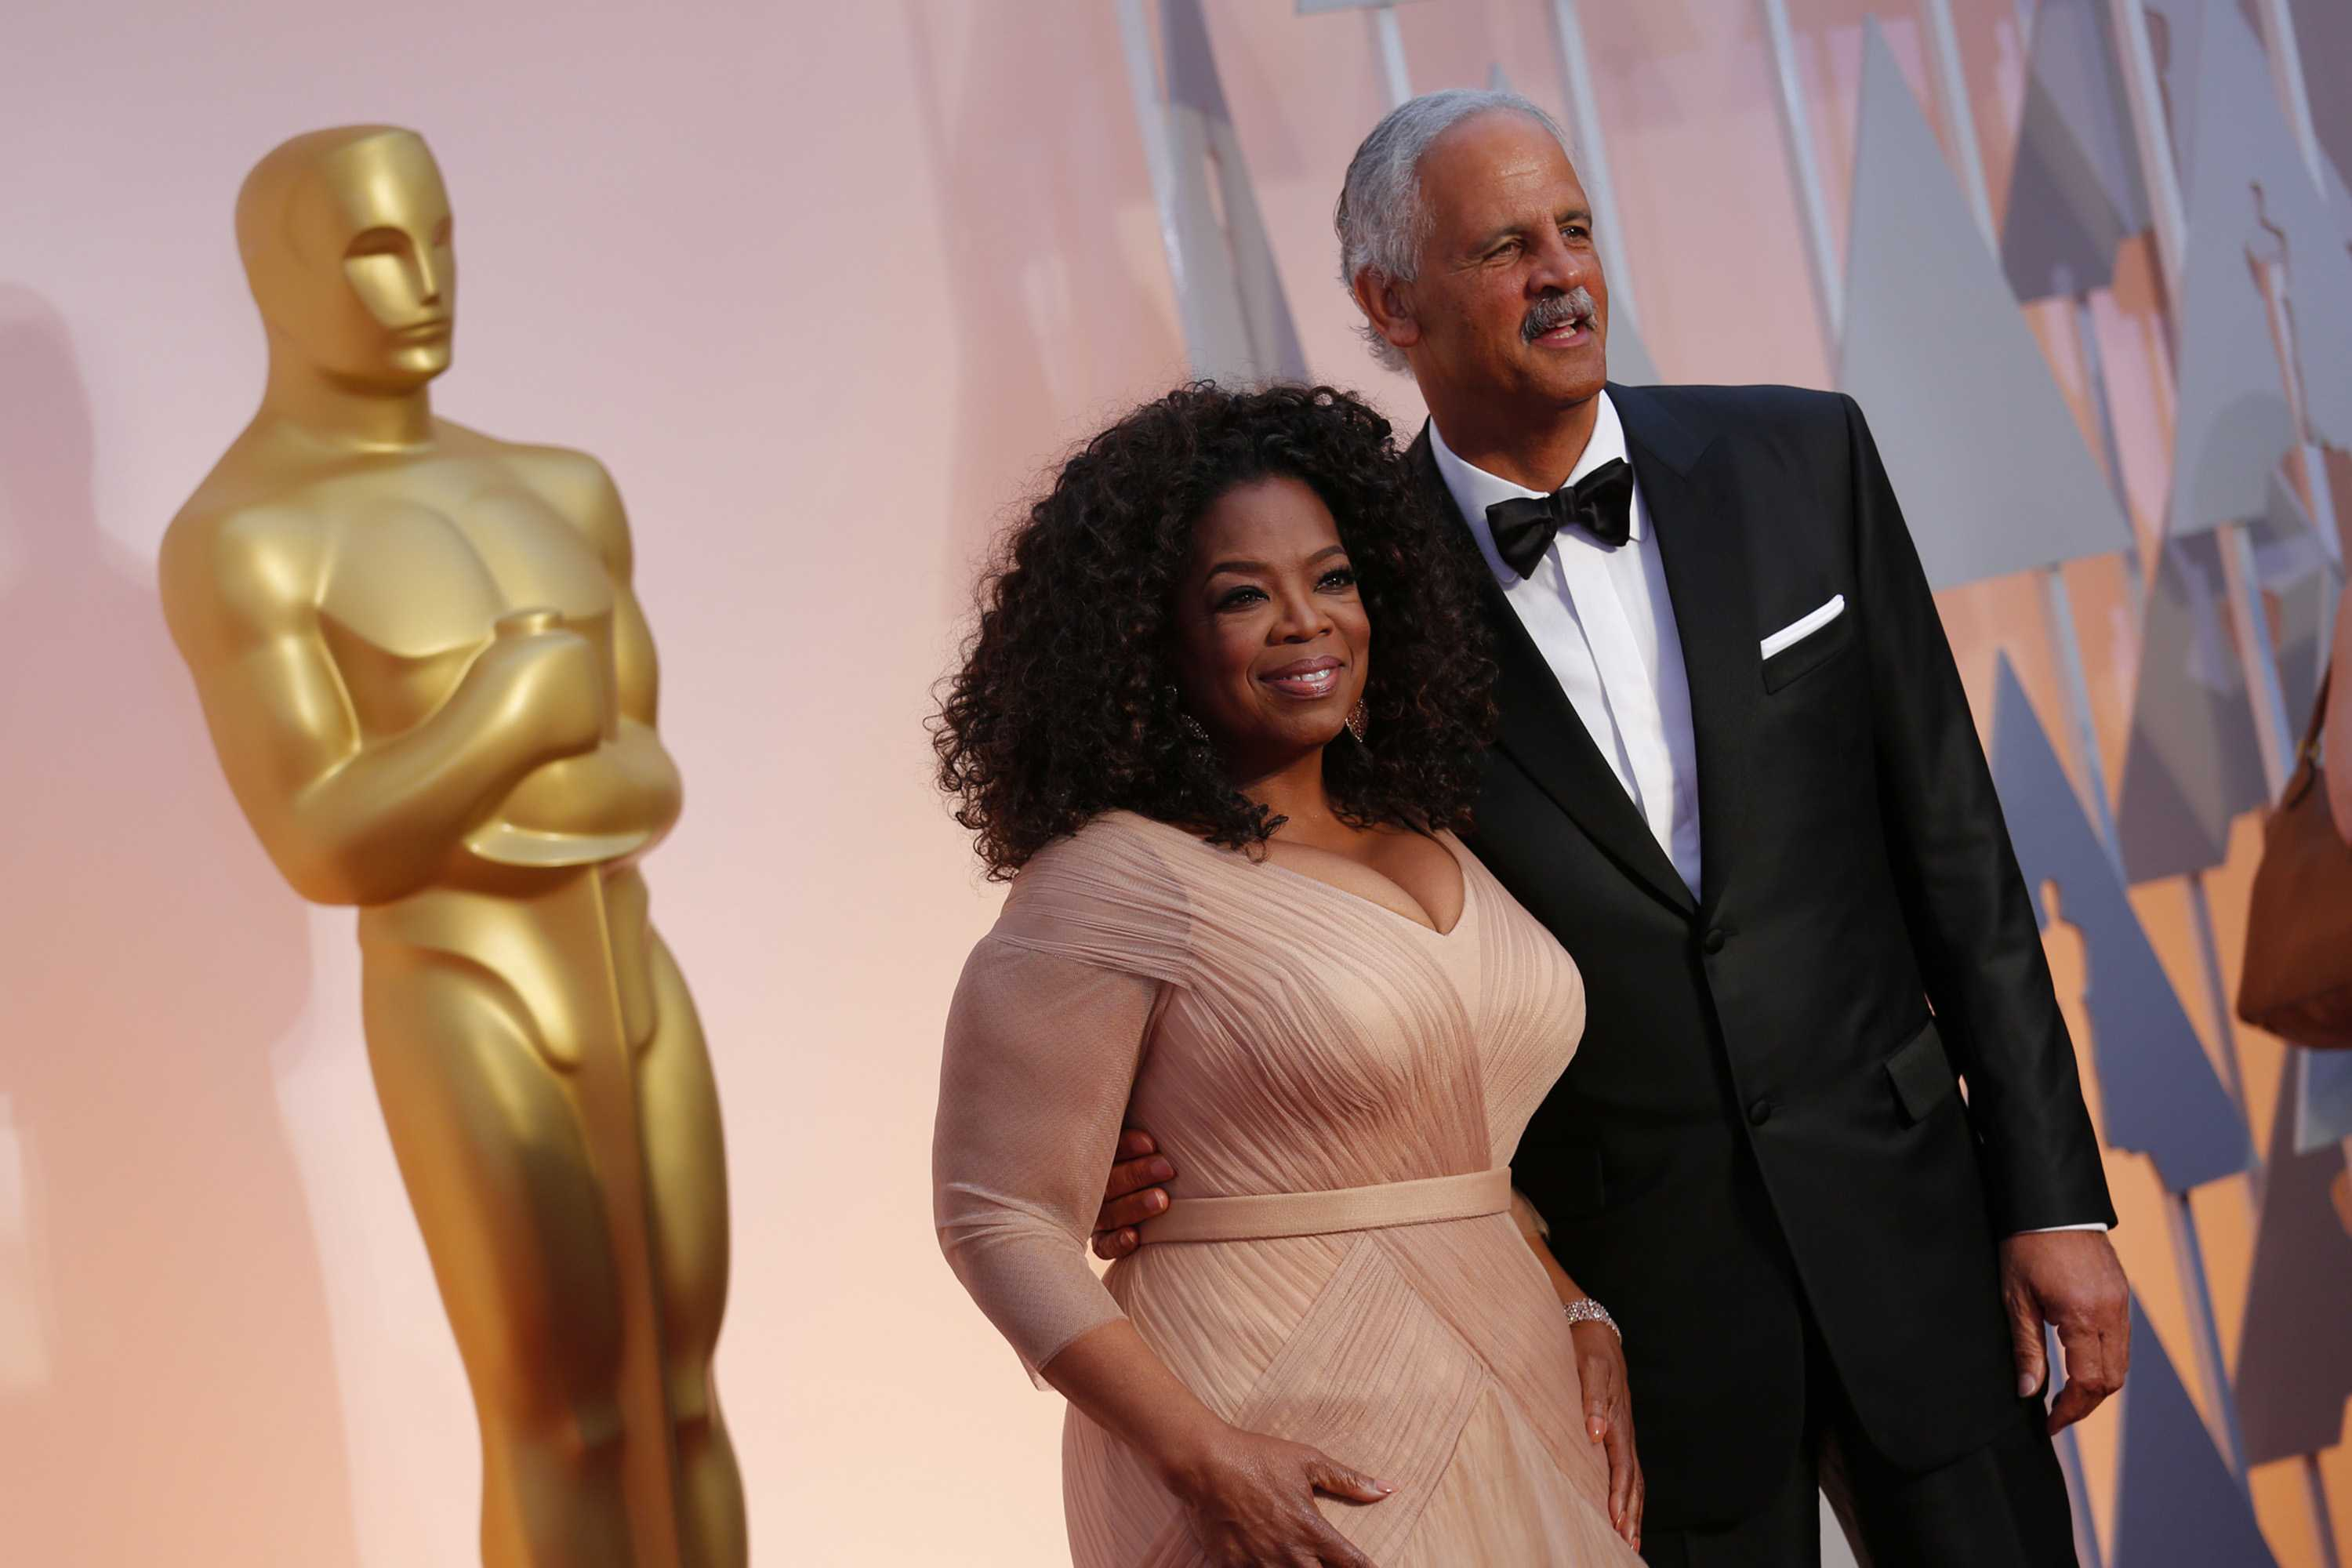 Oprah Winfrey and Stedman Graham arrive at the 87th Annual Academy Awards on Sunday, Feb. 22, 2015, at the Dolby Theatre in Hollywood.